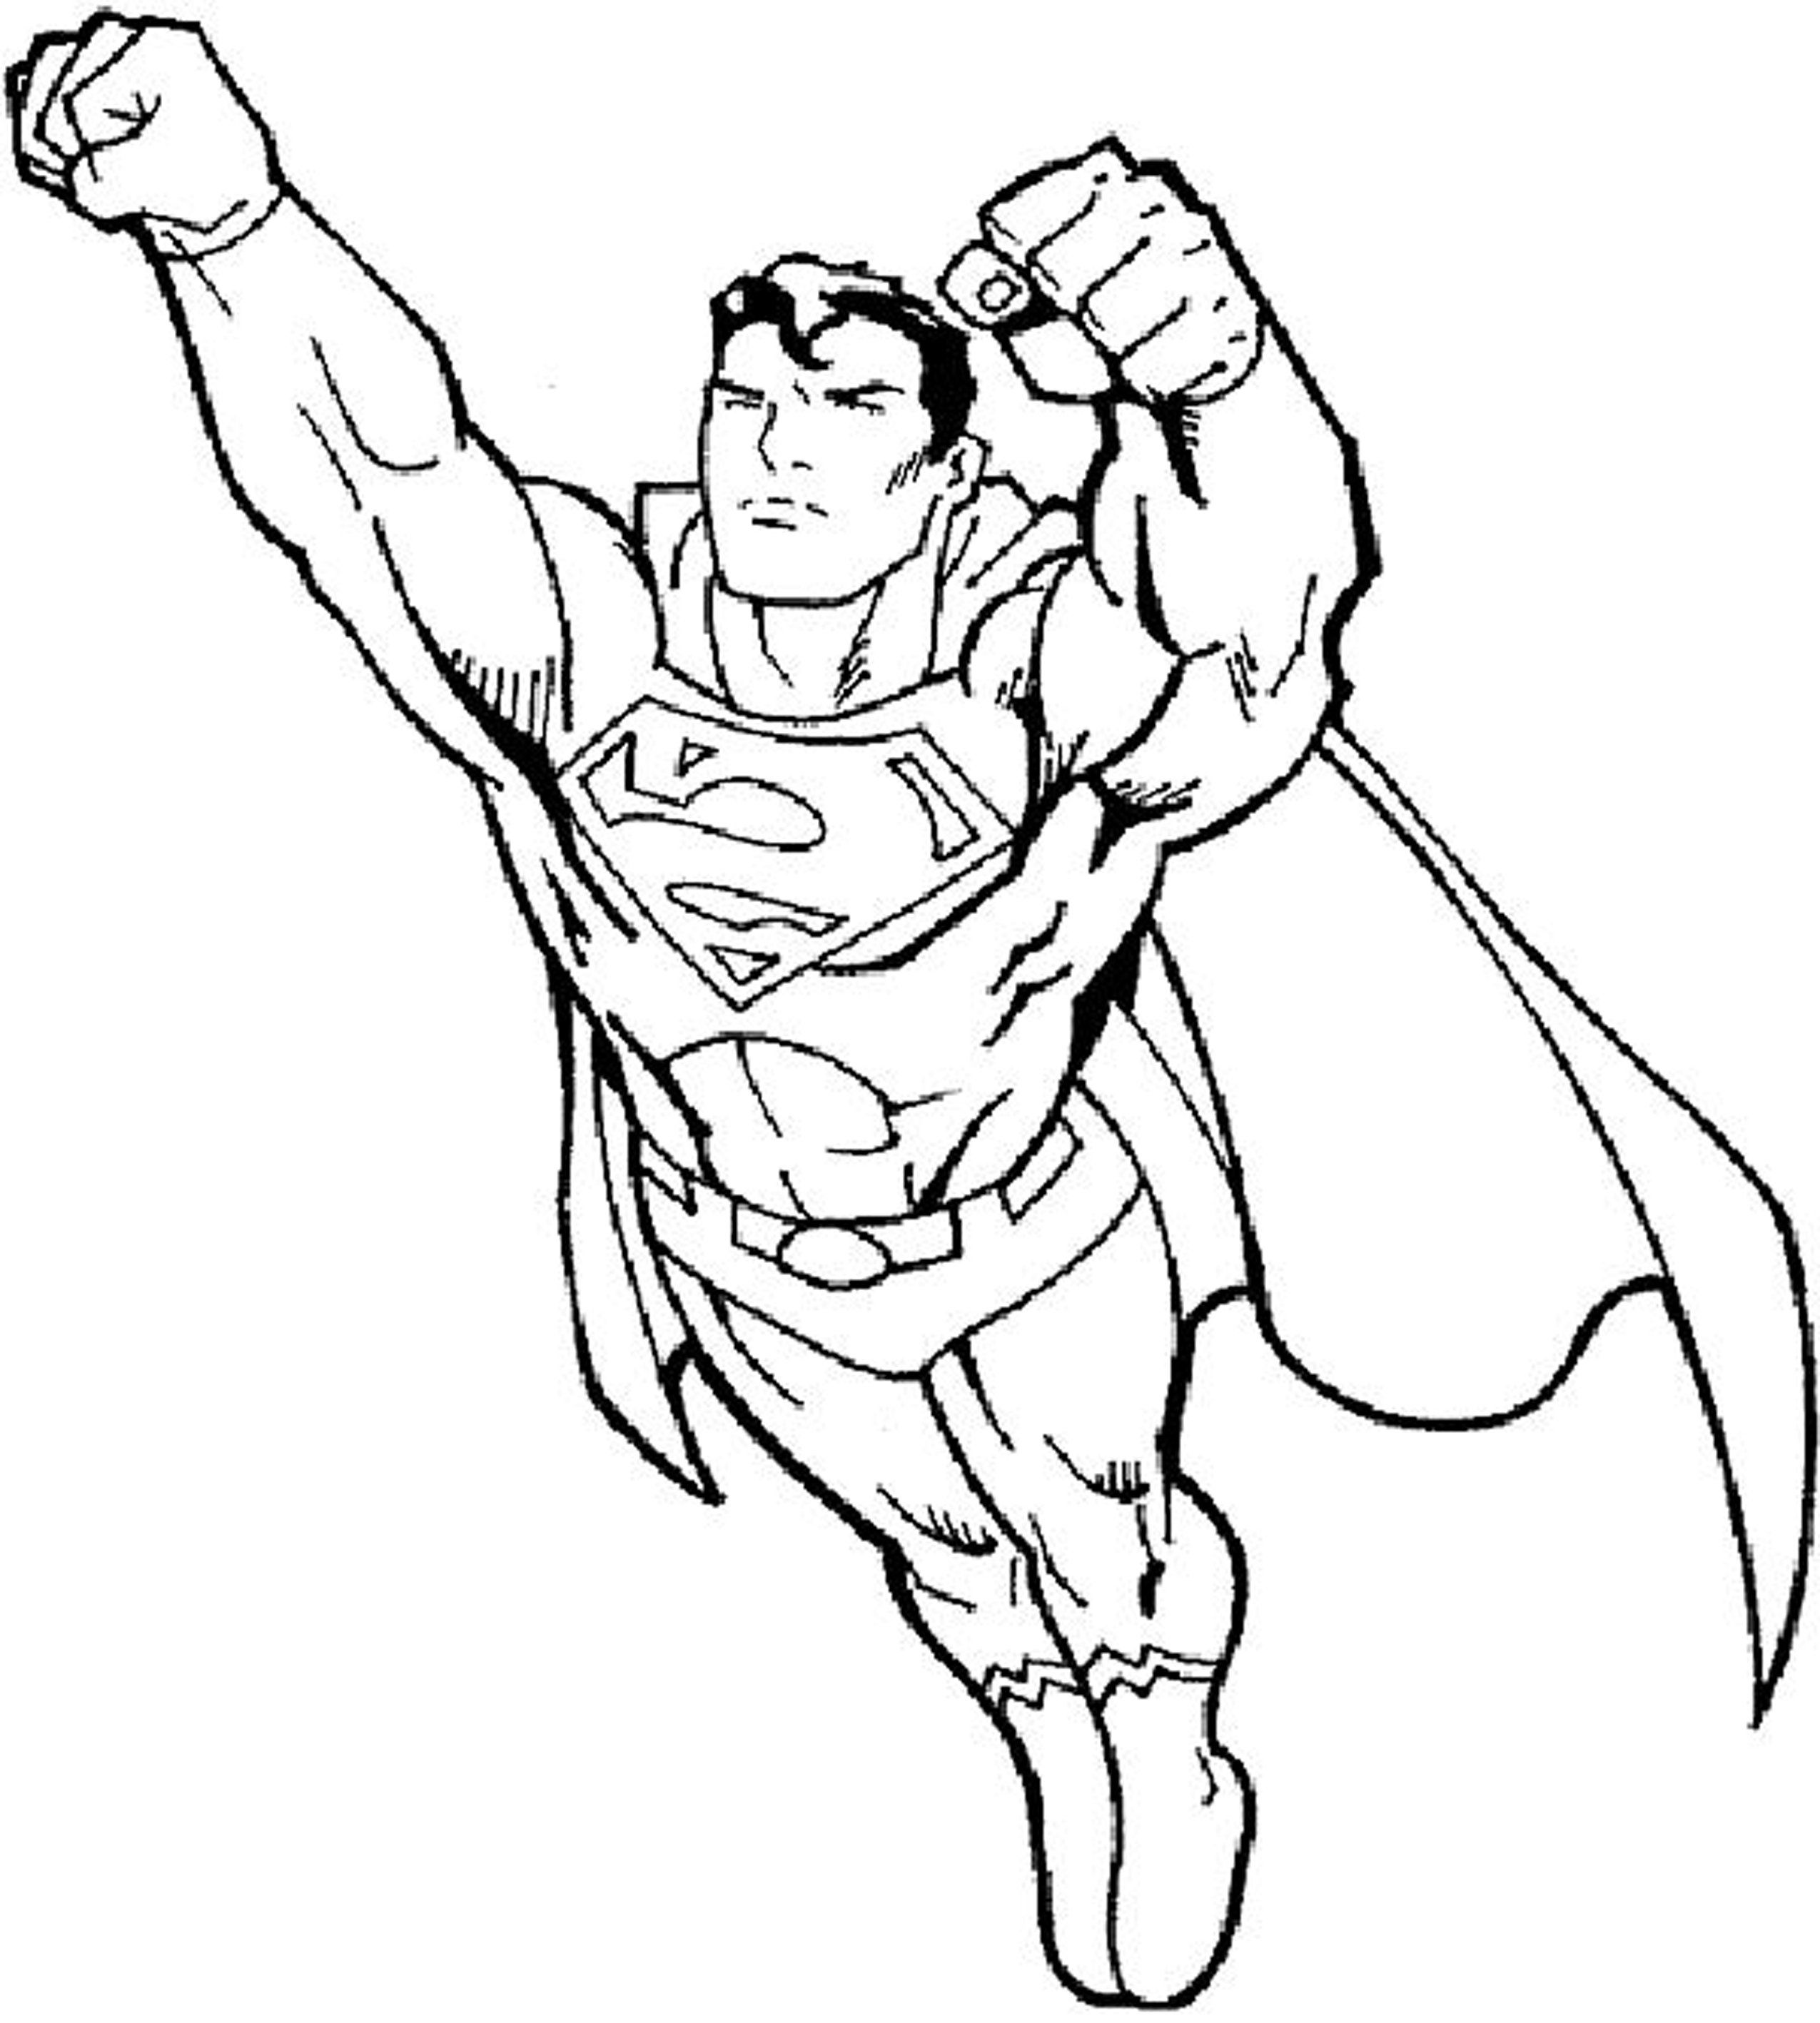 Free coloring pages for boys superman clips pinterest superman vs batman coloring pages Club Penguin Puffles Coloring Pages to Print Out Littlest Pet Shop Coloring Pages to Print Out